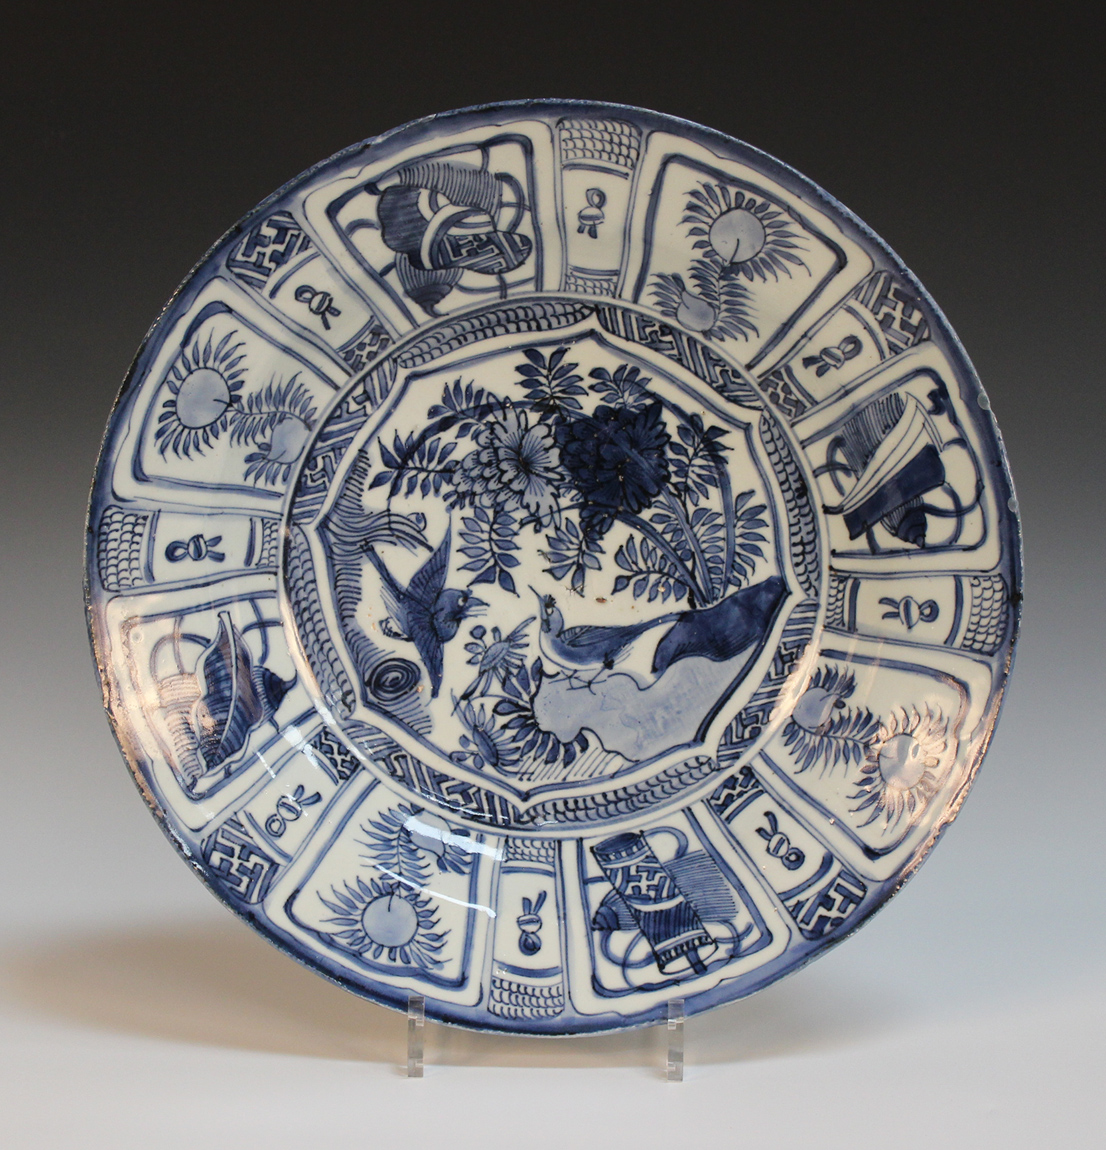 A Chinese blue and white Kraak porcelain dish, late Ming dynasty